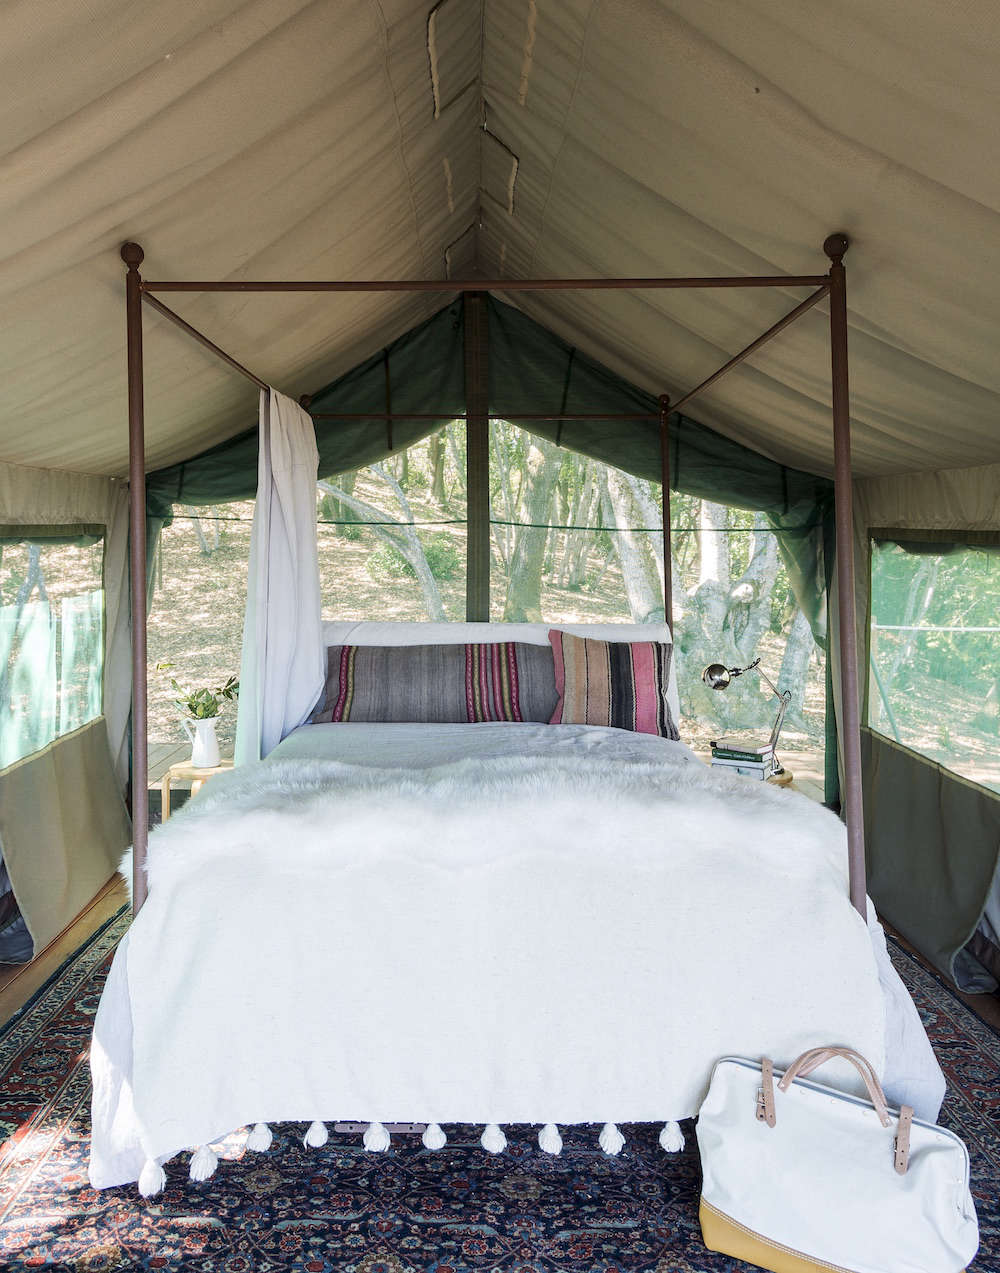 White and Wood Outdoor Glamping Bed in Tent